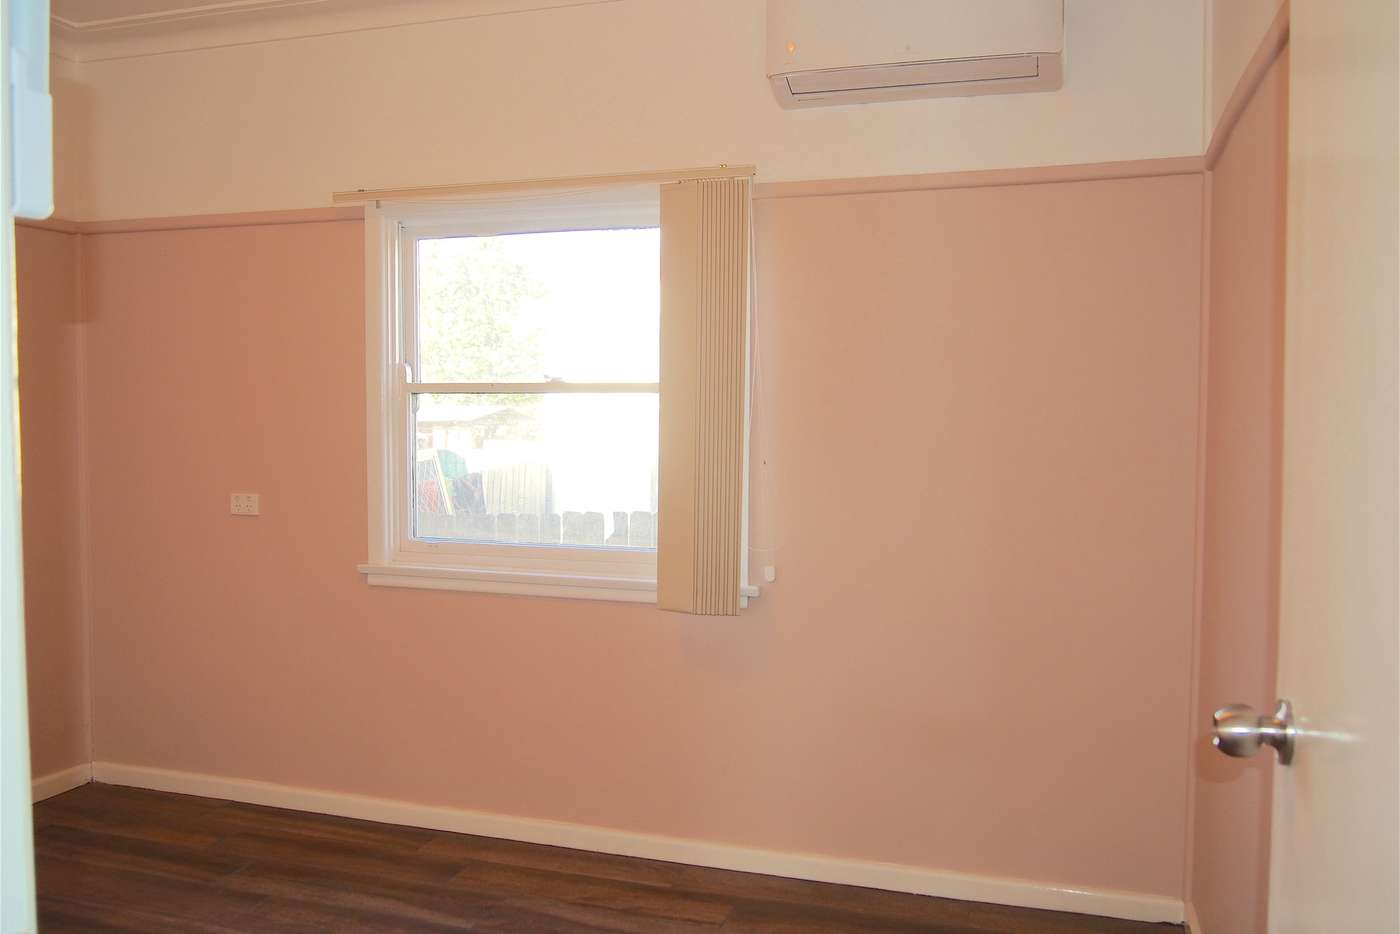 Seventh view of Homely house listing, 208 Victoria Street, Wetherill Park NSW 2164